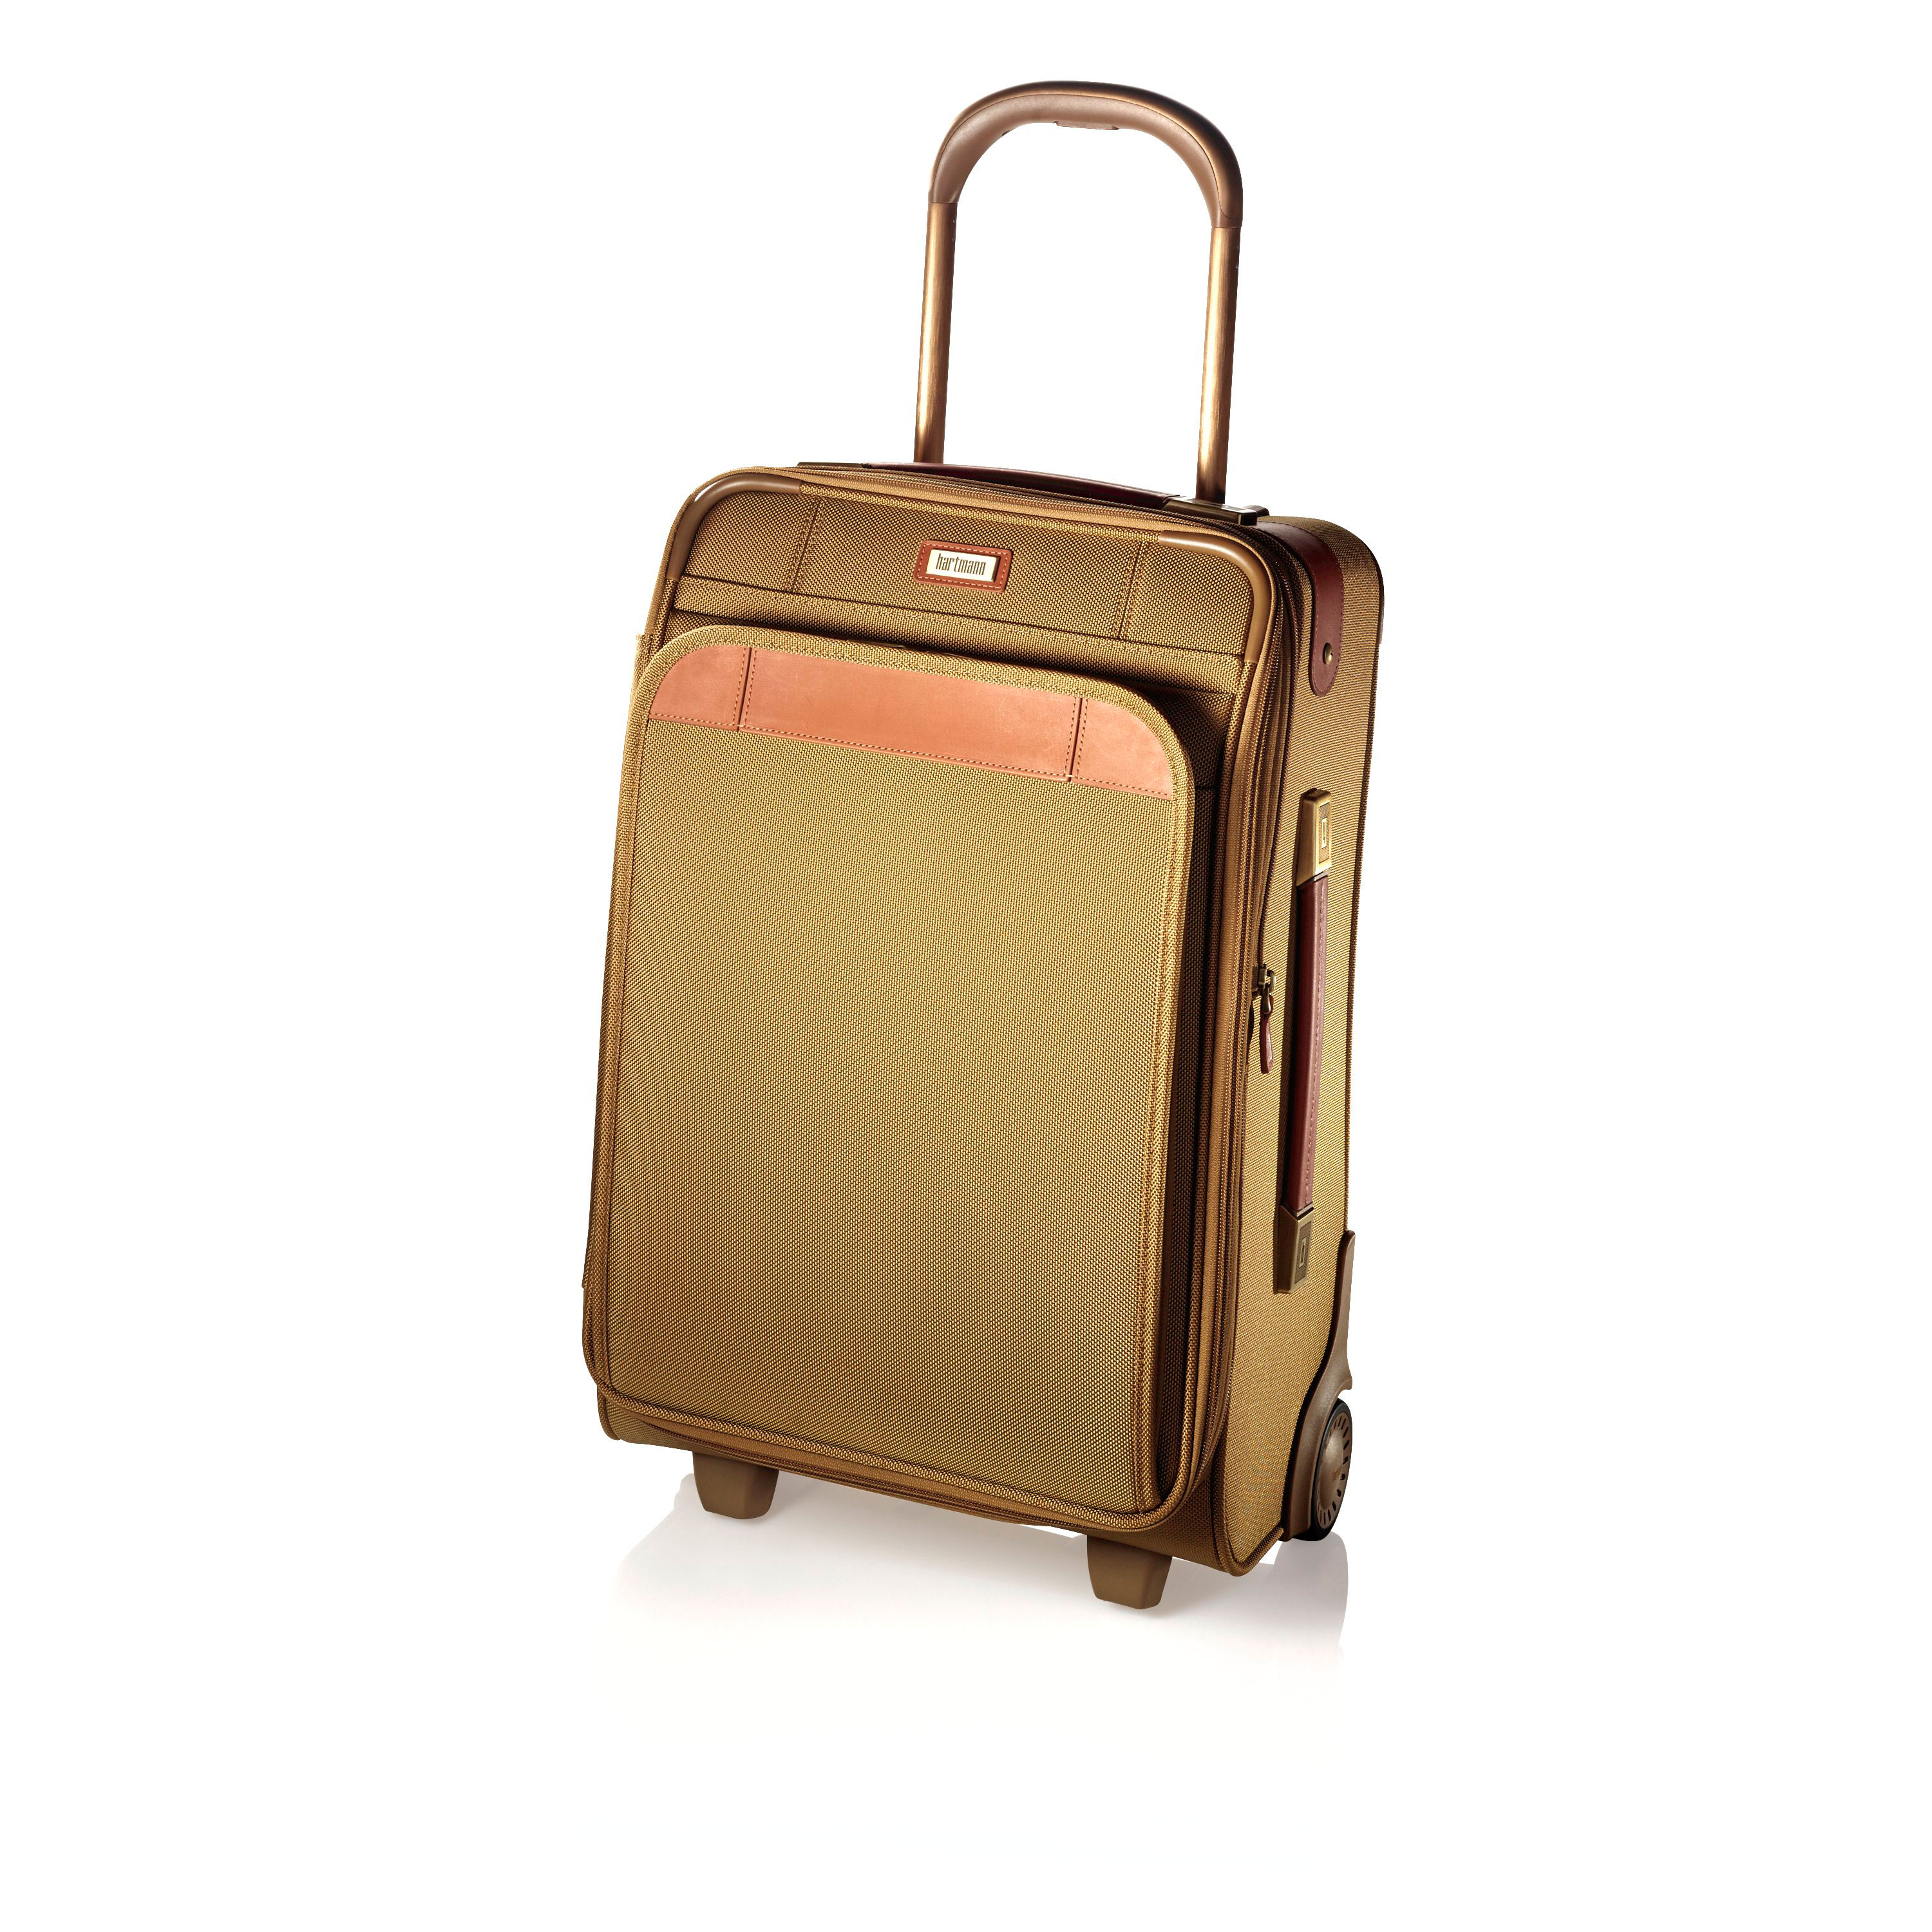 8c29a11462 Hartmann Ratio Classic Deluxe Global Carry On Upright in the color Safari.